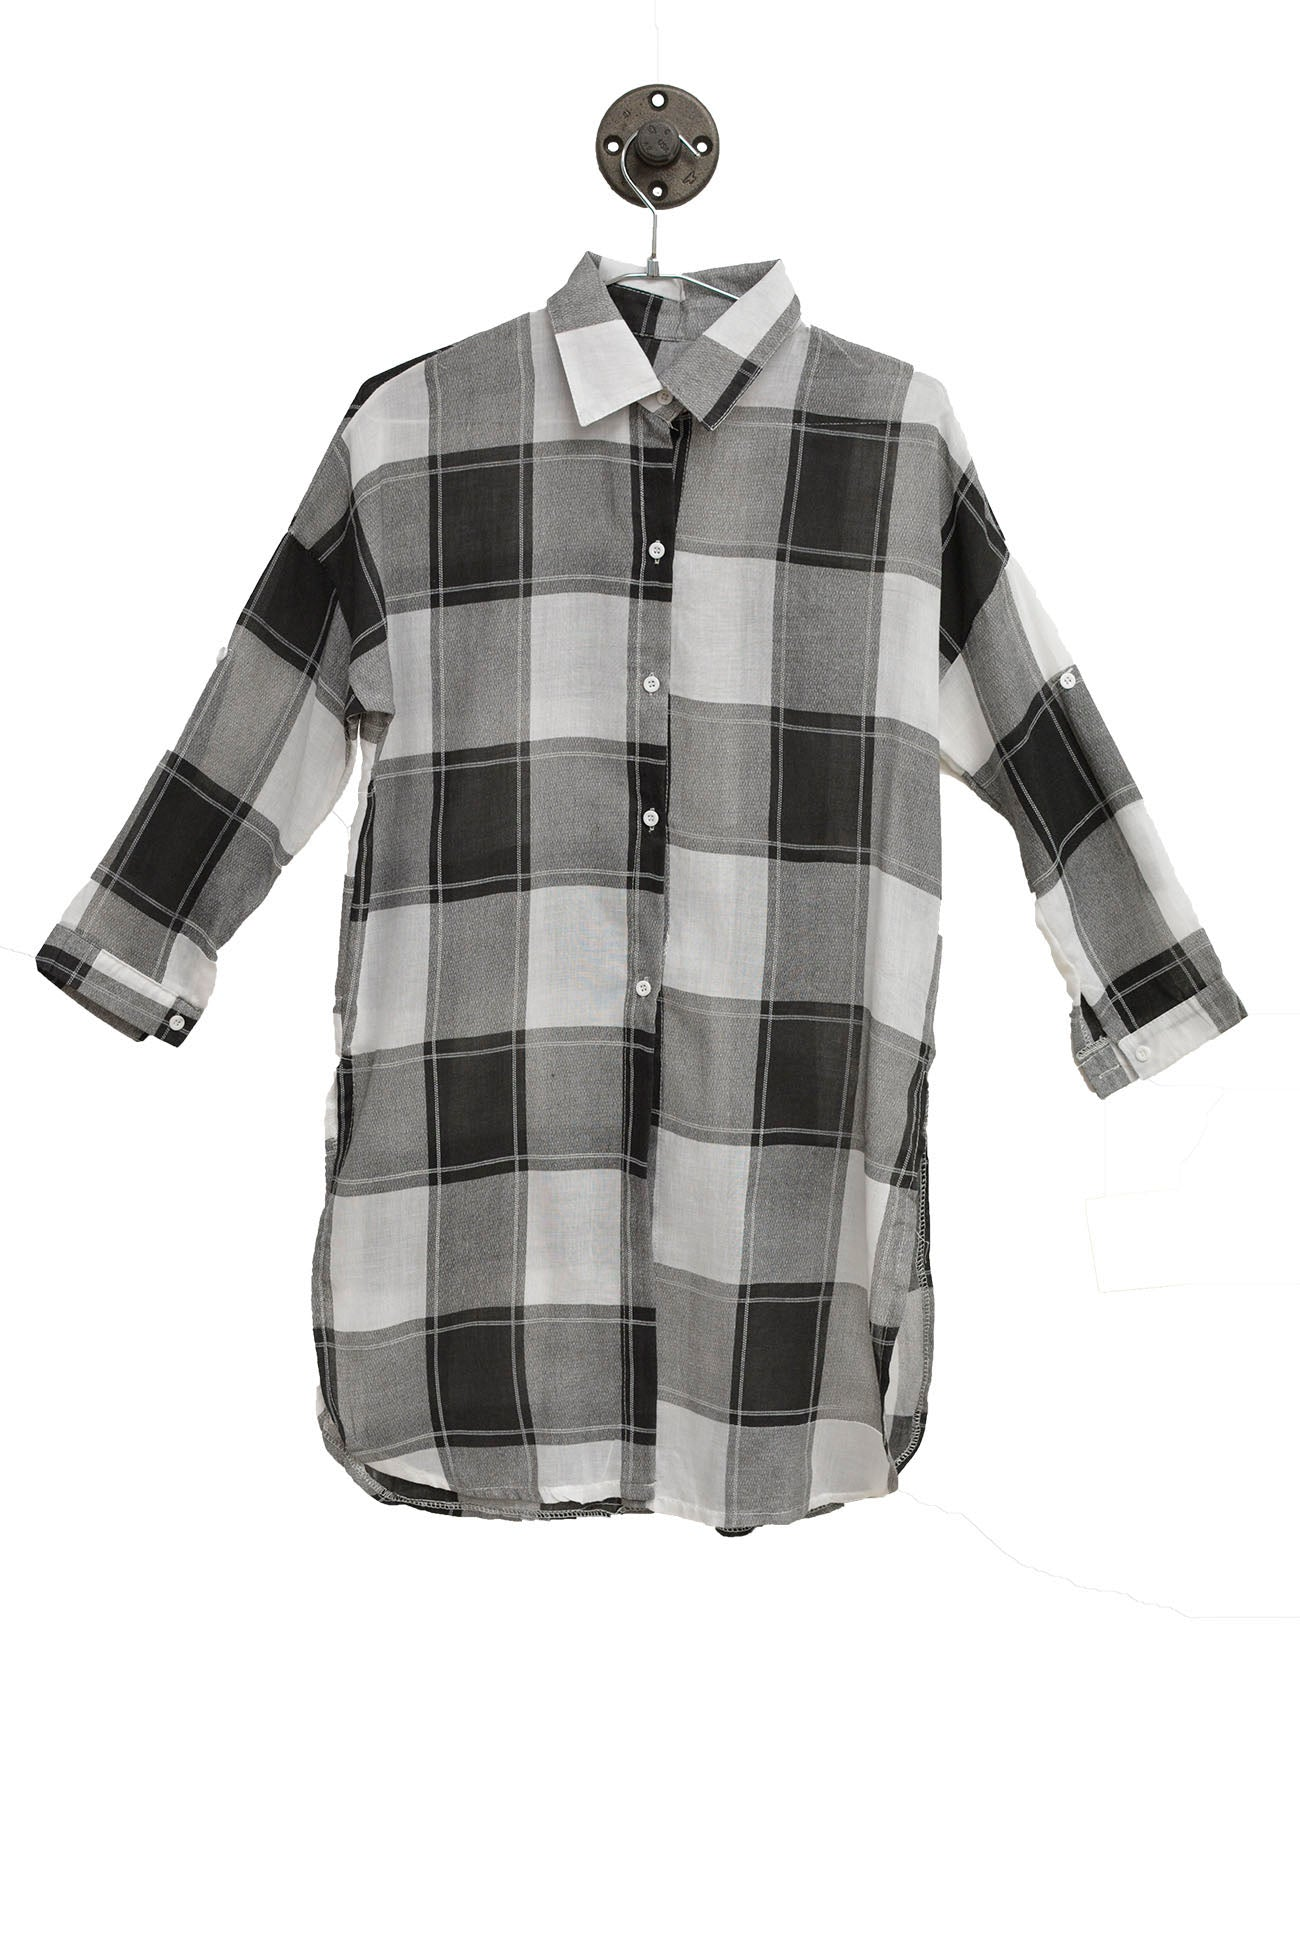 Black And Grey Checkered Buttoned Up Shirt